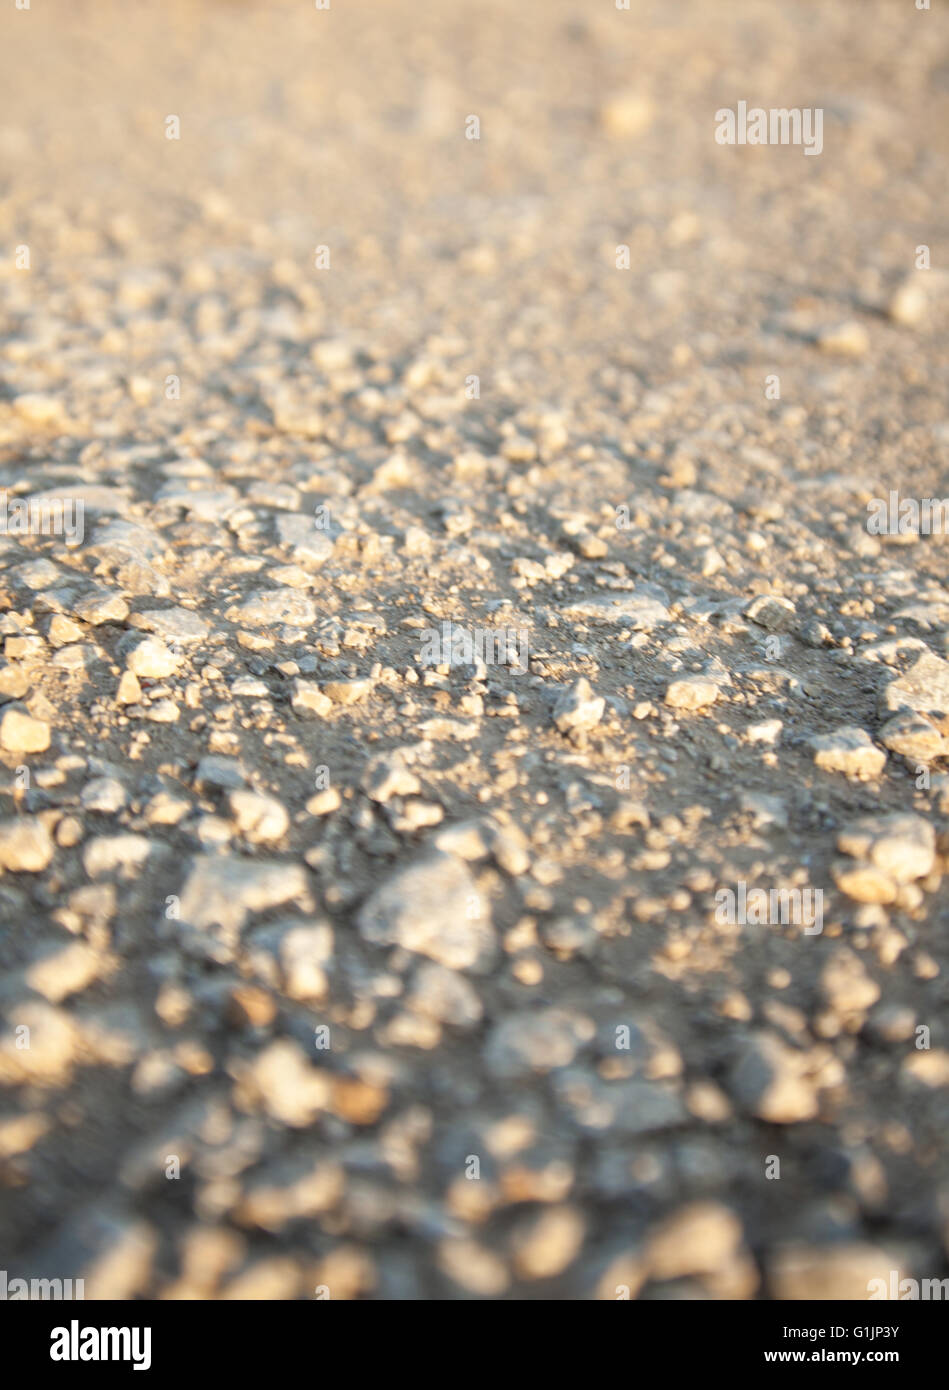 Texture of sone dirt road, low angle shot. Stock Photo